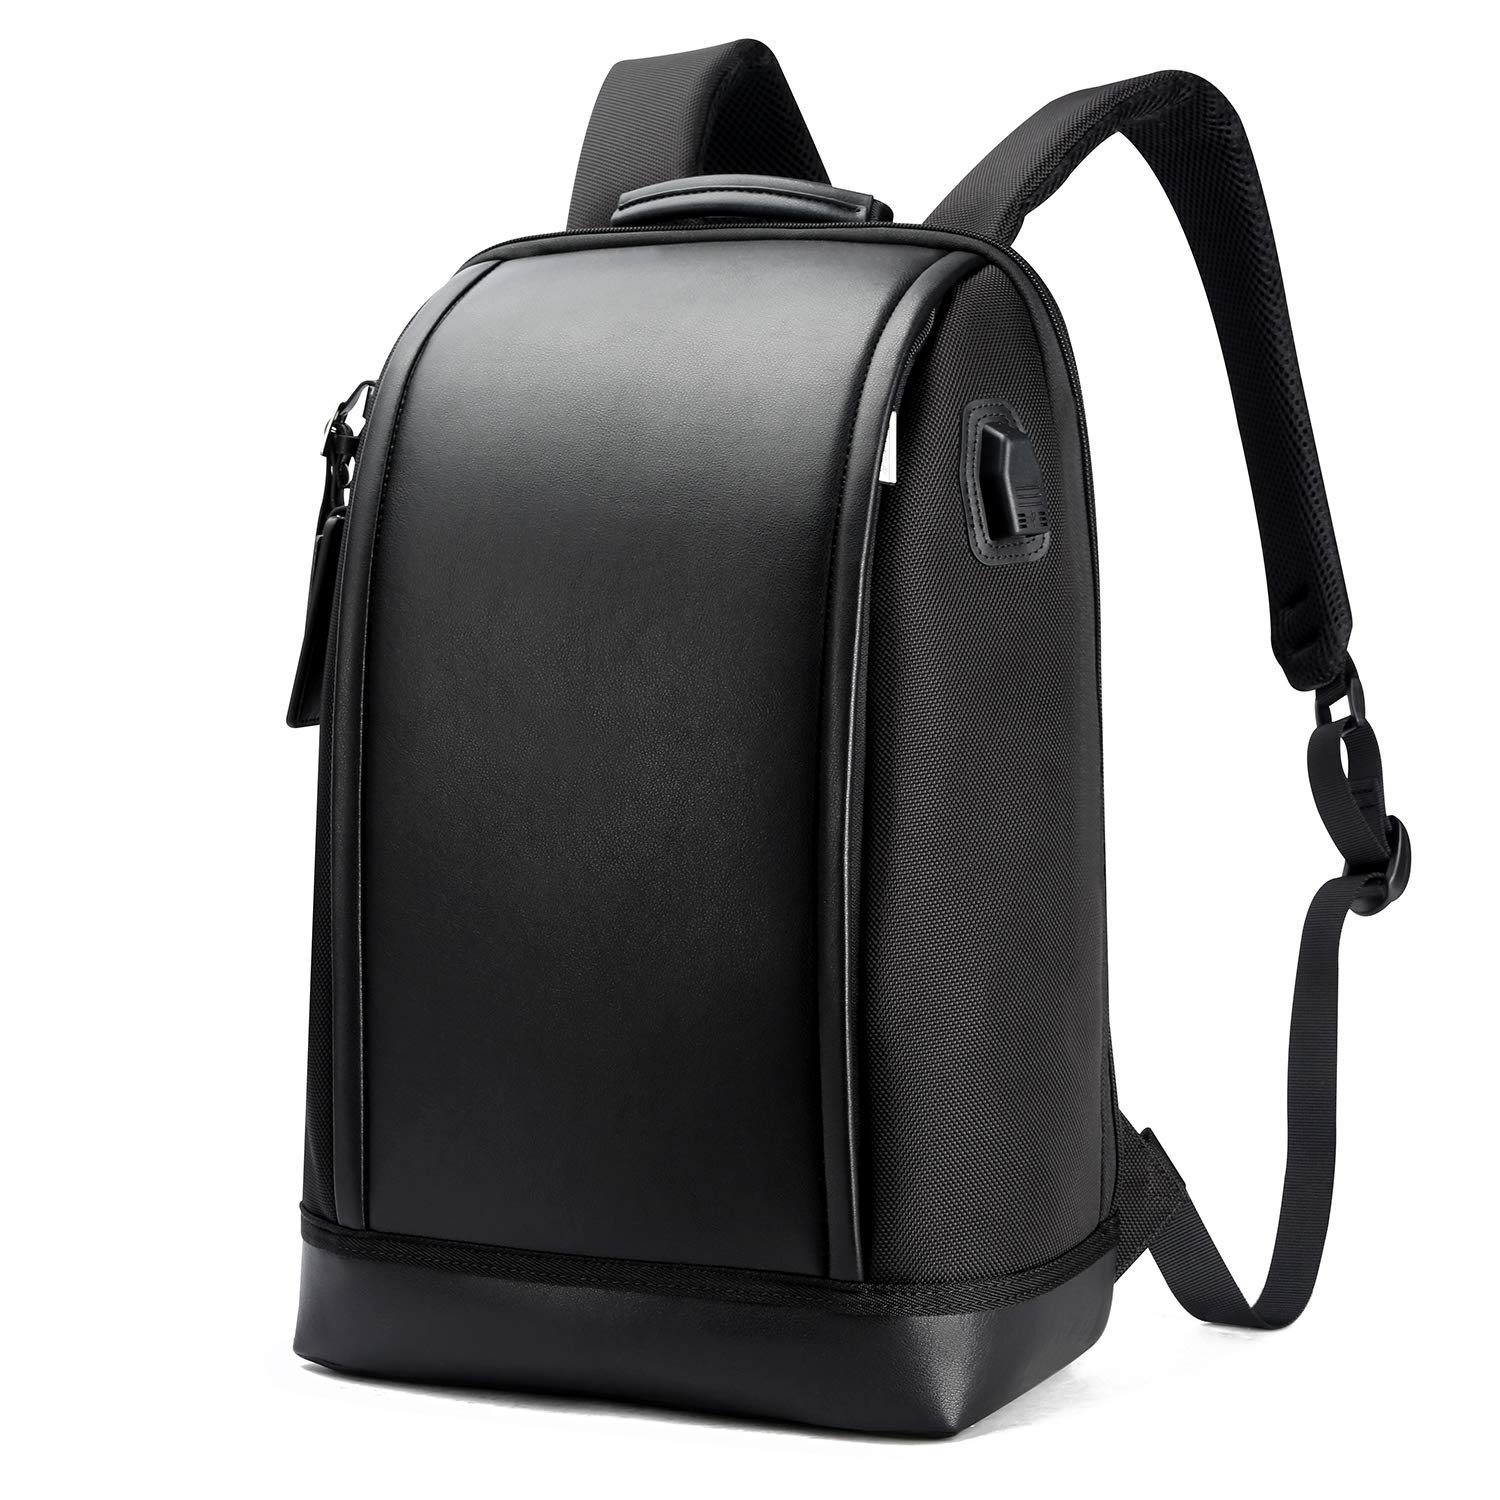 bf0012502fe8 BOPAI Business 15.6 inch Laptop Backpack Invisible Water Bottle Pocket  Anti-Theft Laptop Rucksack USB Charging Port and Anti-Explosion Zipper  Water ...